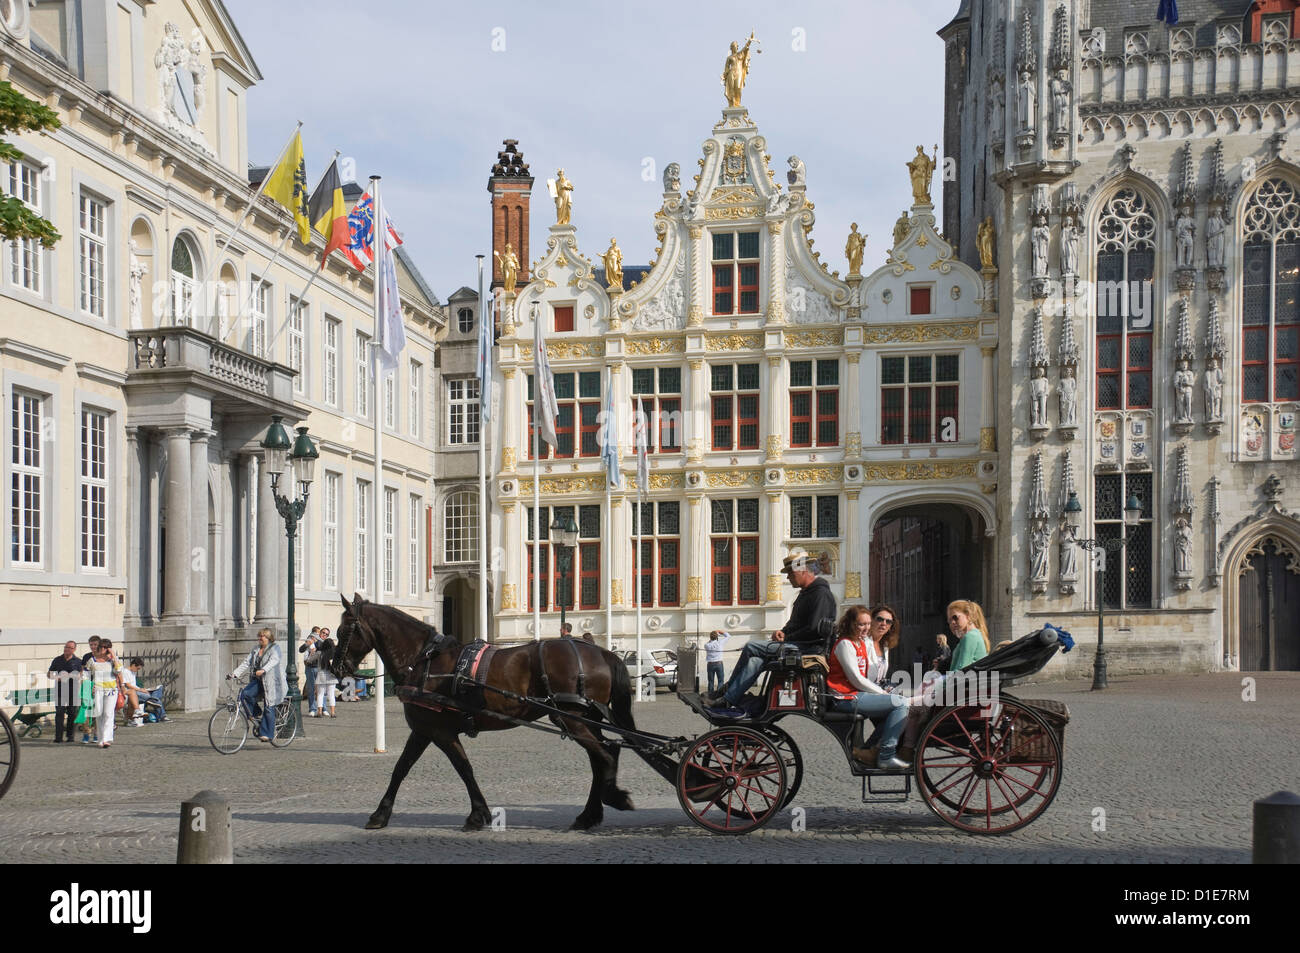 A horse drawn carriage crosses the Burg Square, passing the Stadhuis (Town Hall) buildings, Brugge, Belgium, Europe - Stock Image